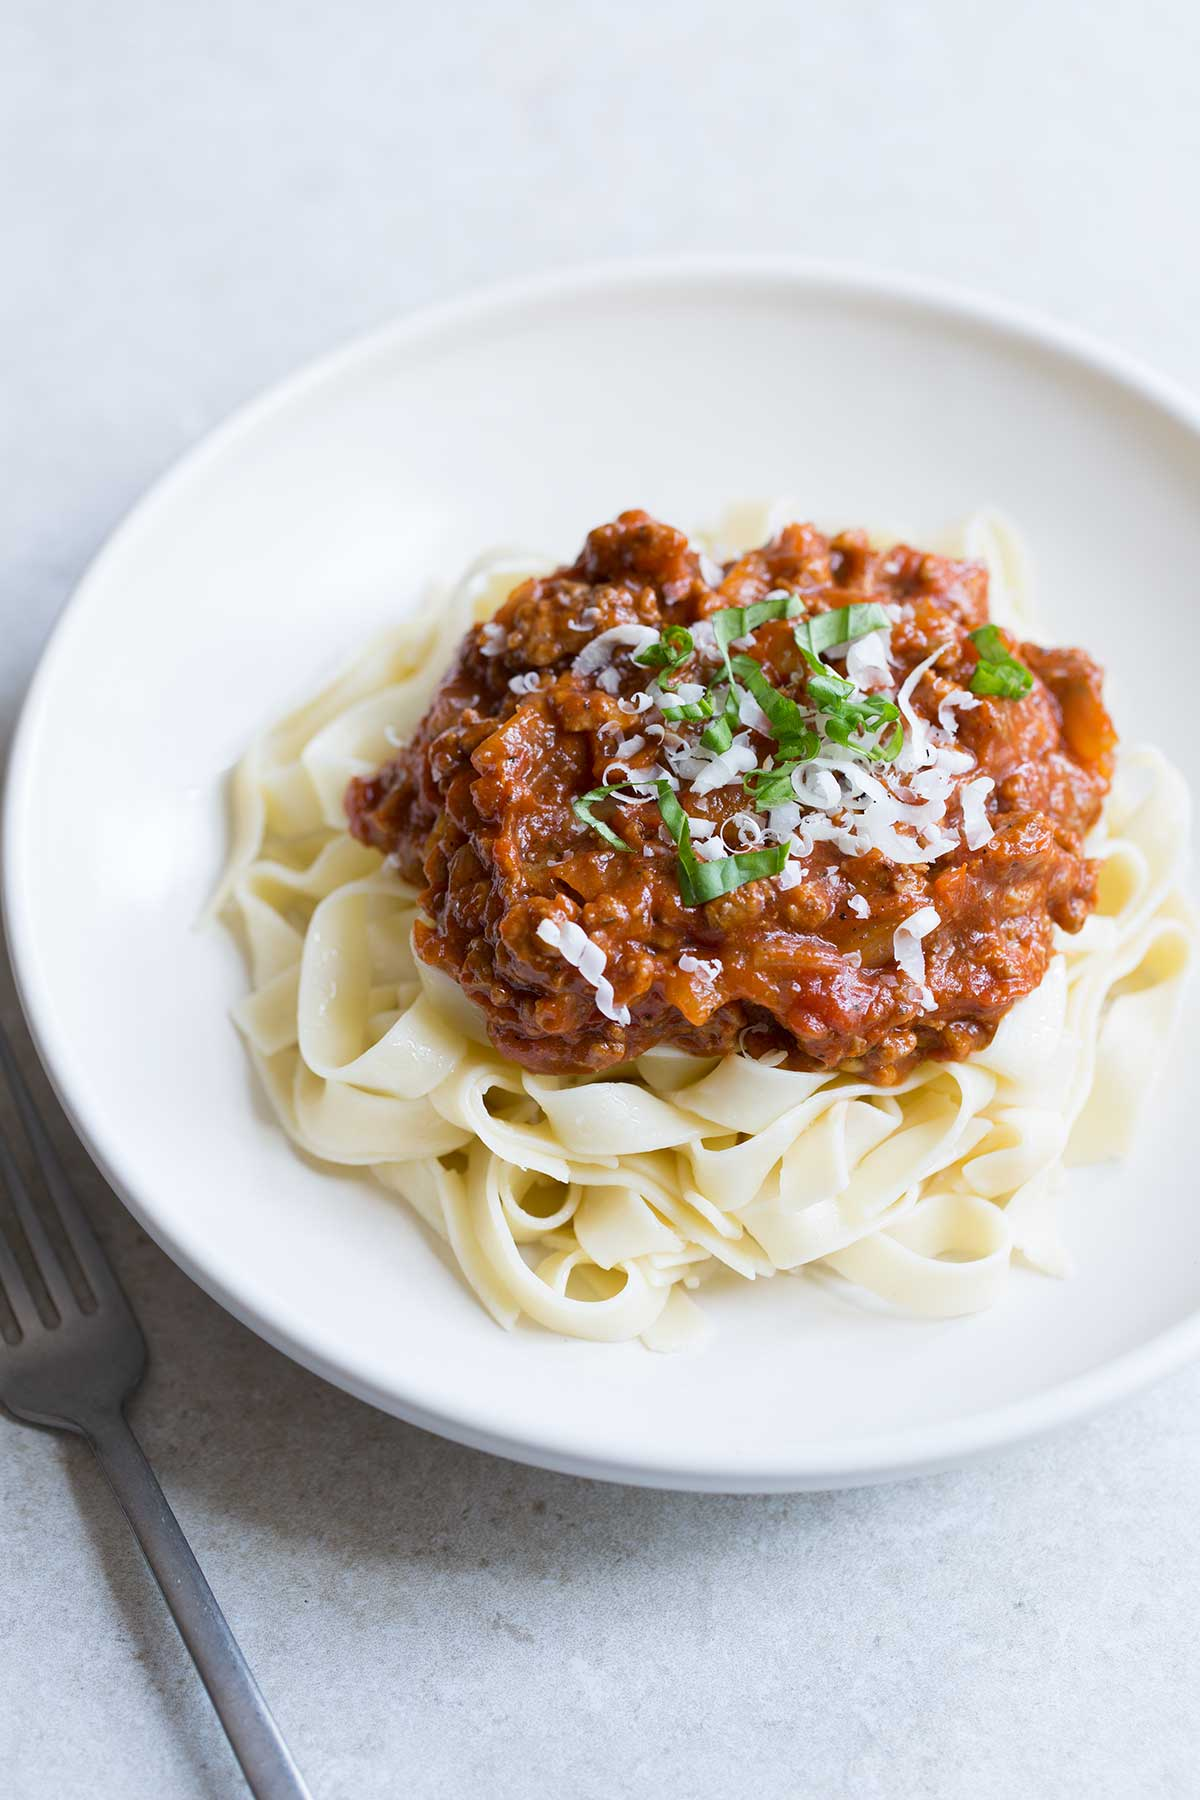 A meat sauce recipe served over pasta in a bowl, topped with fresh grated parmesan and sliced basil.